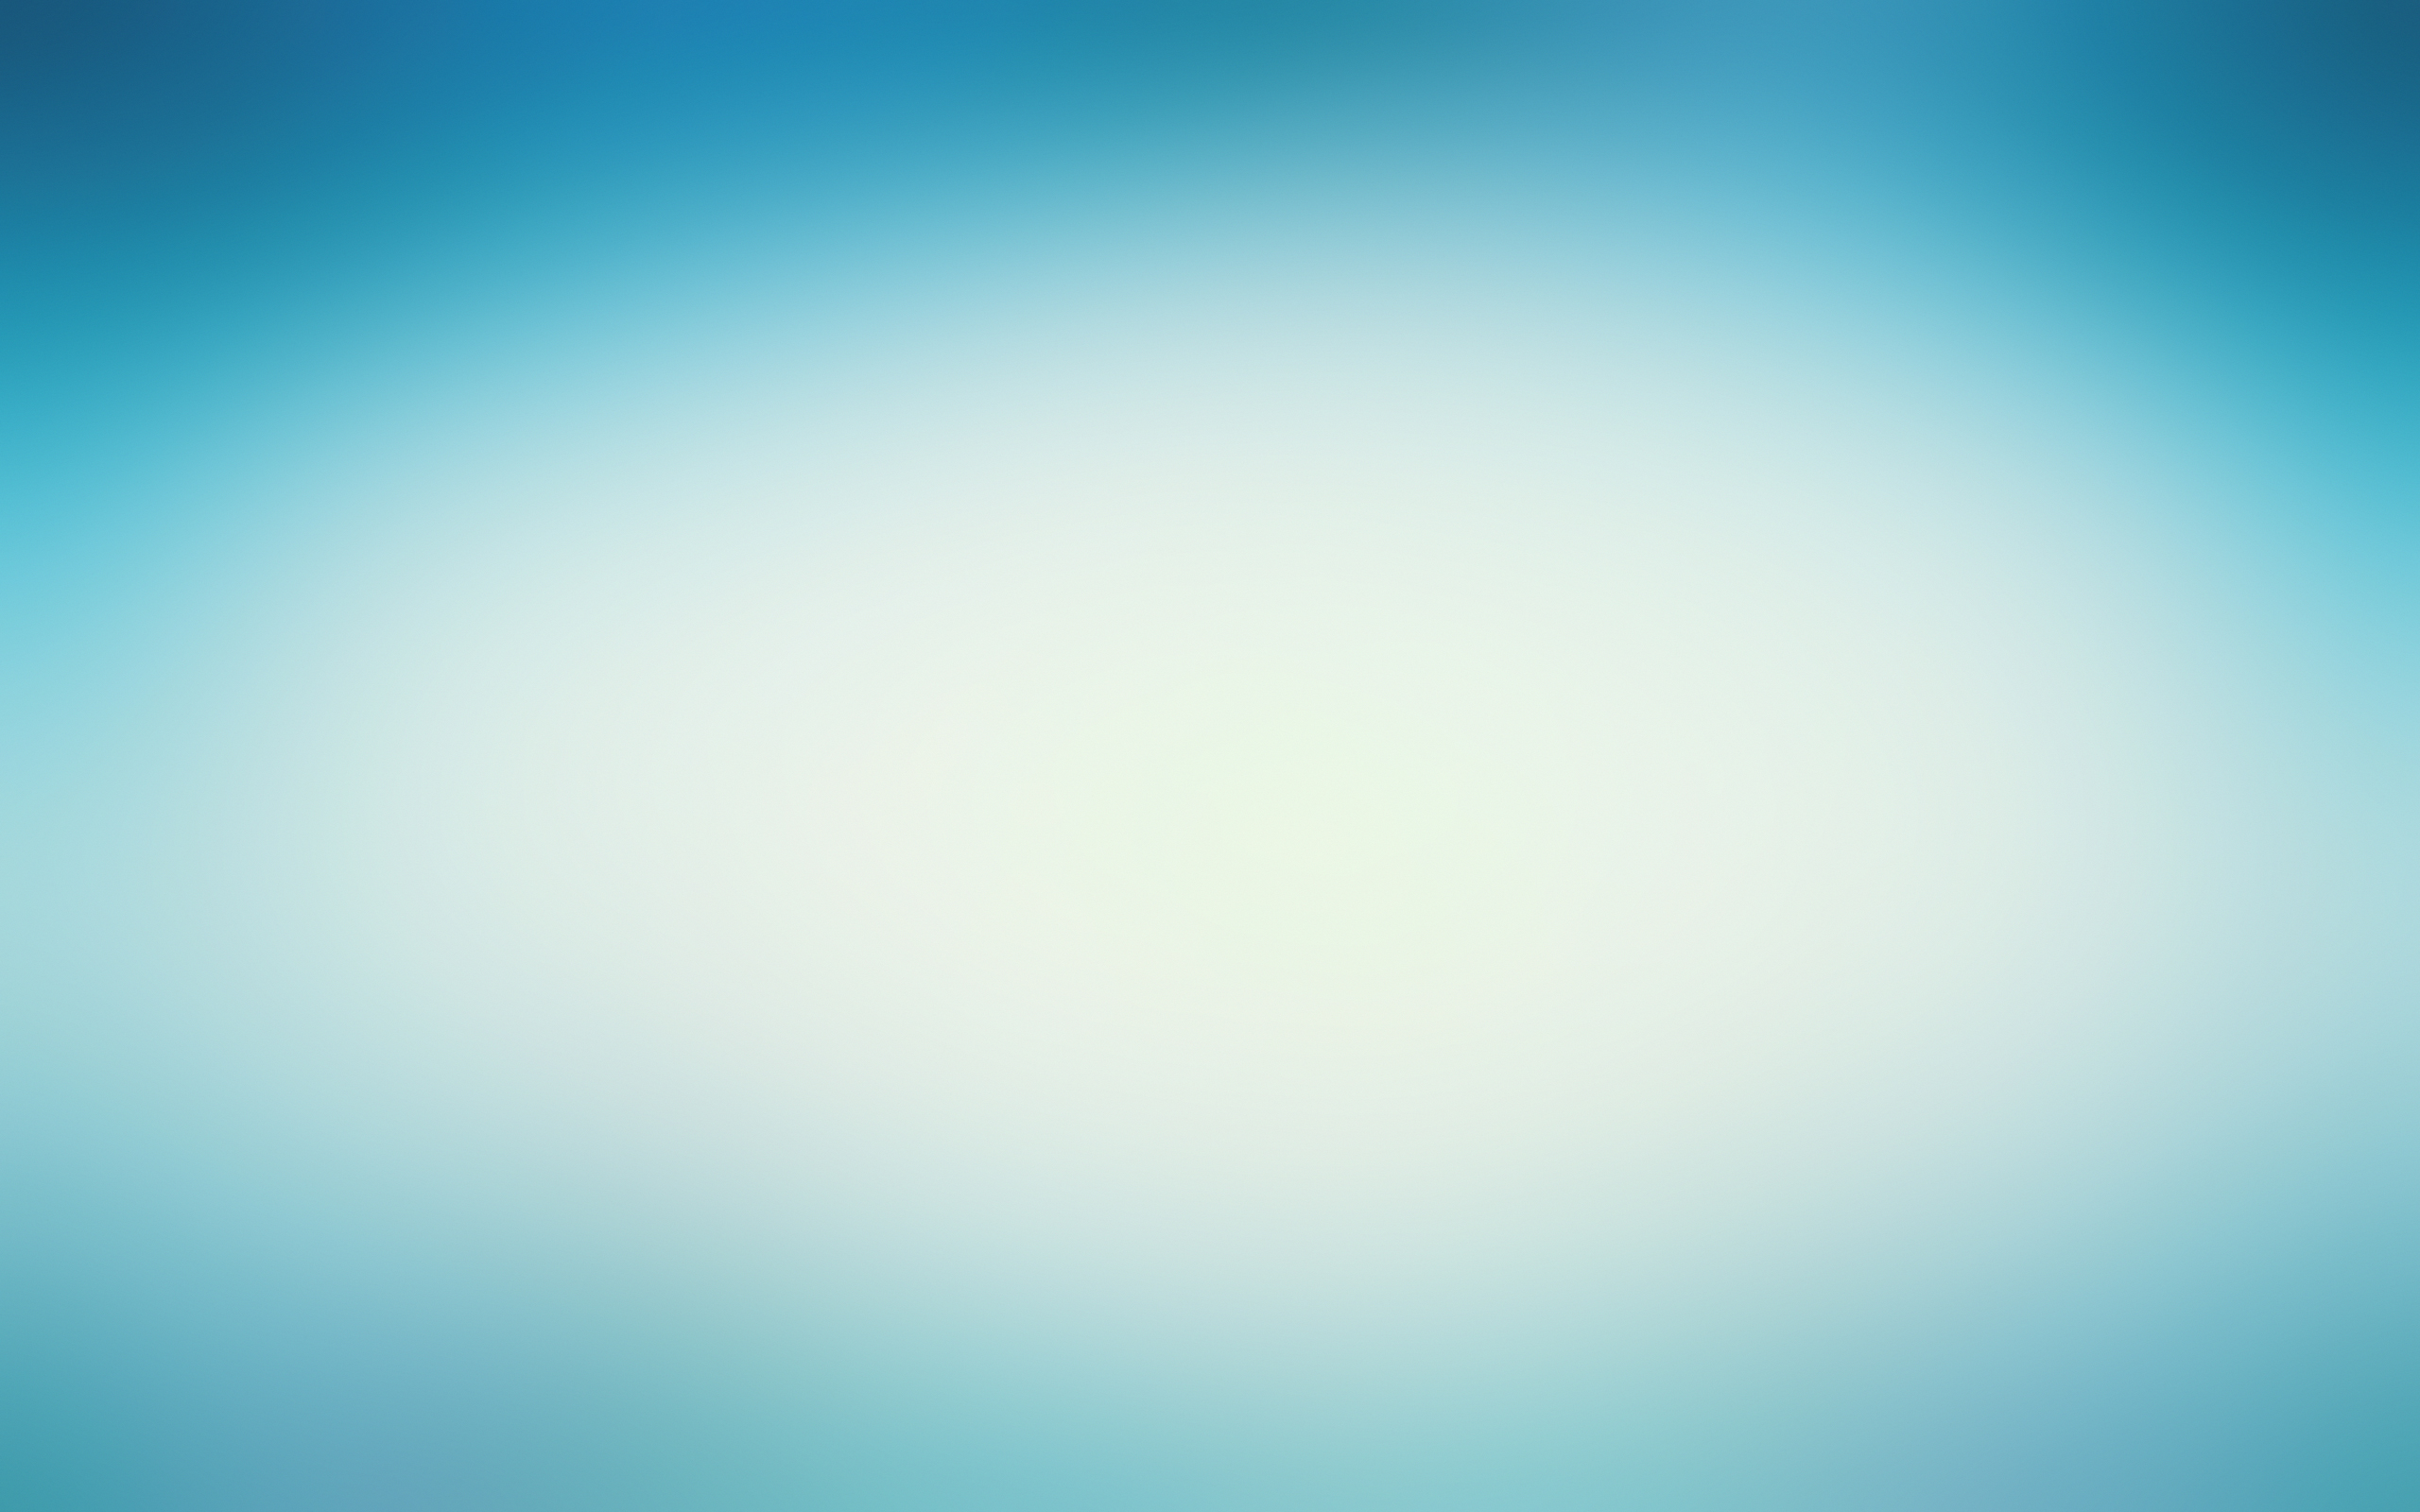 Backgrounds for your computer or presentation | planwallpaper.com